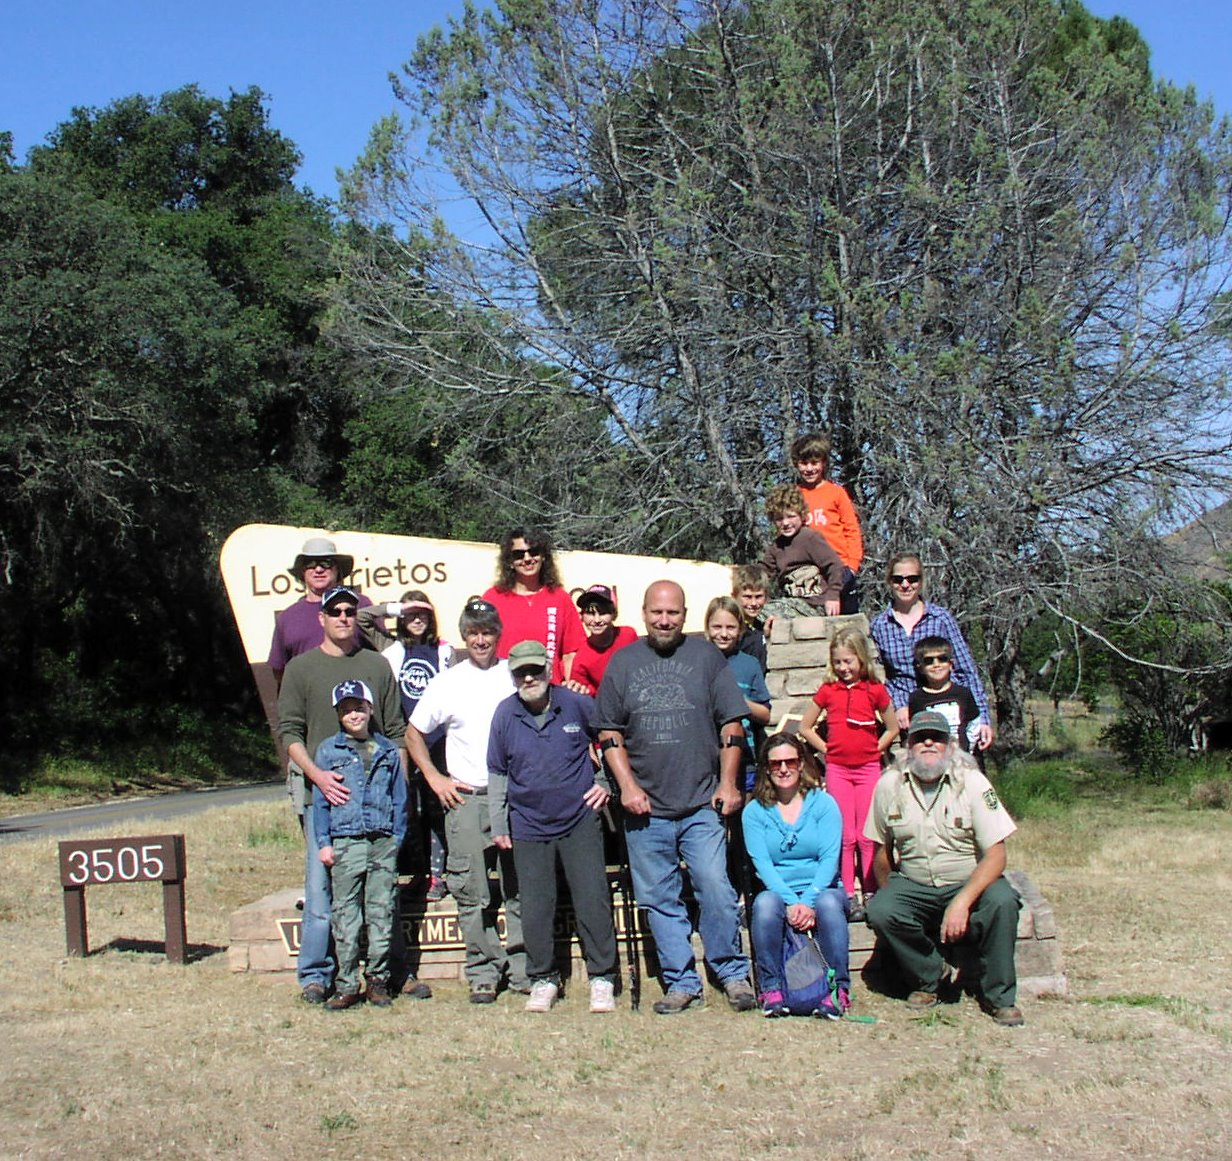 [image] South Coast Karate Club Cleans up the Santa Ynez River